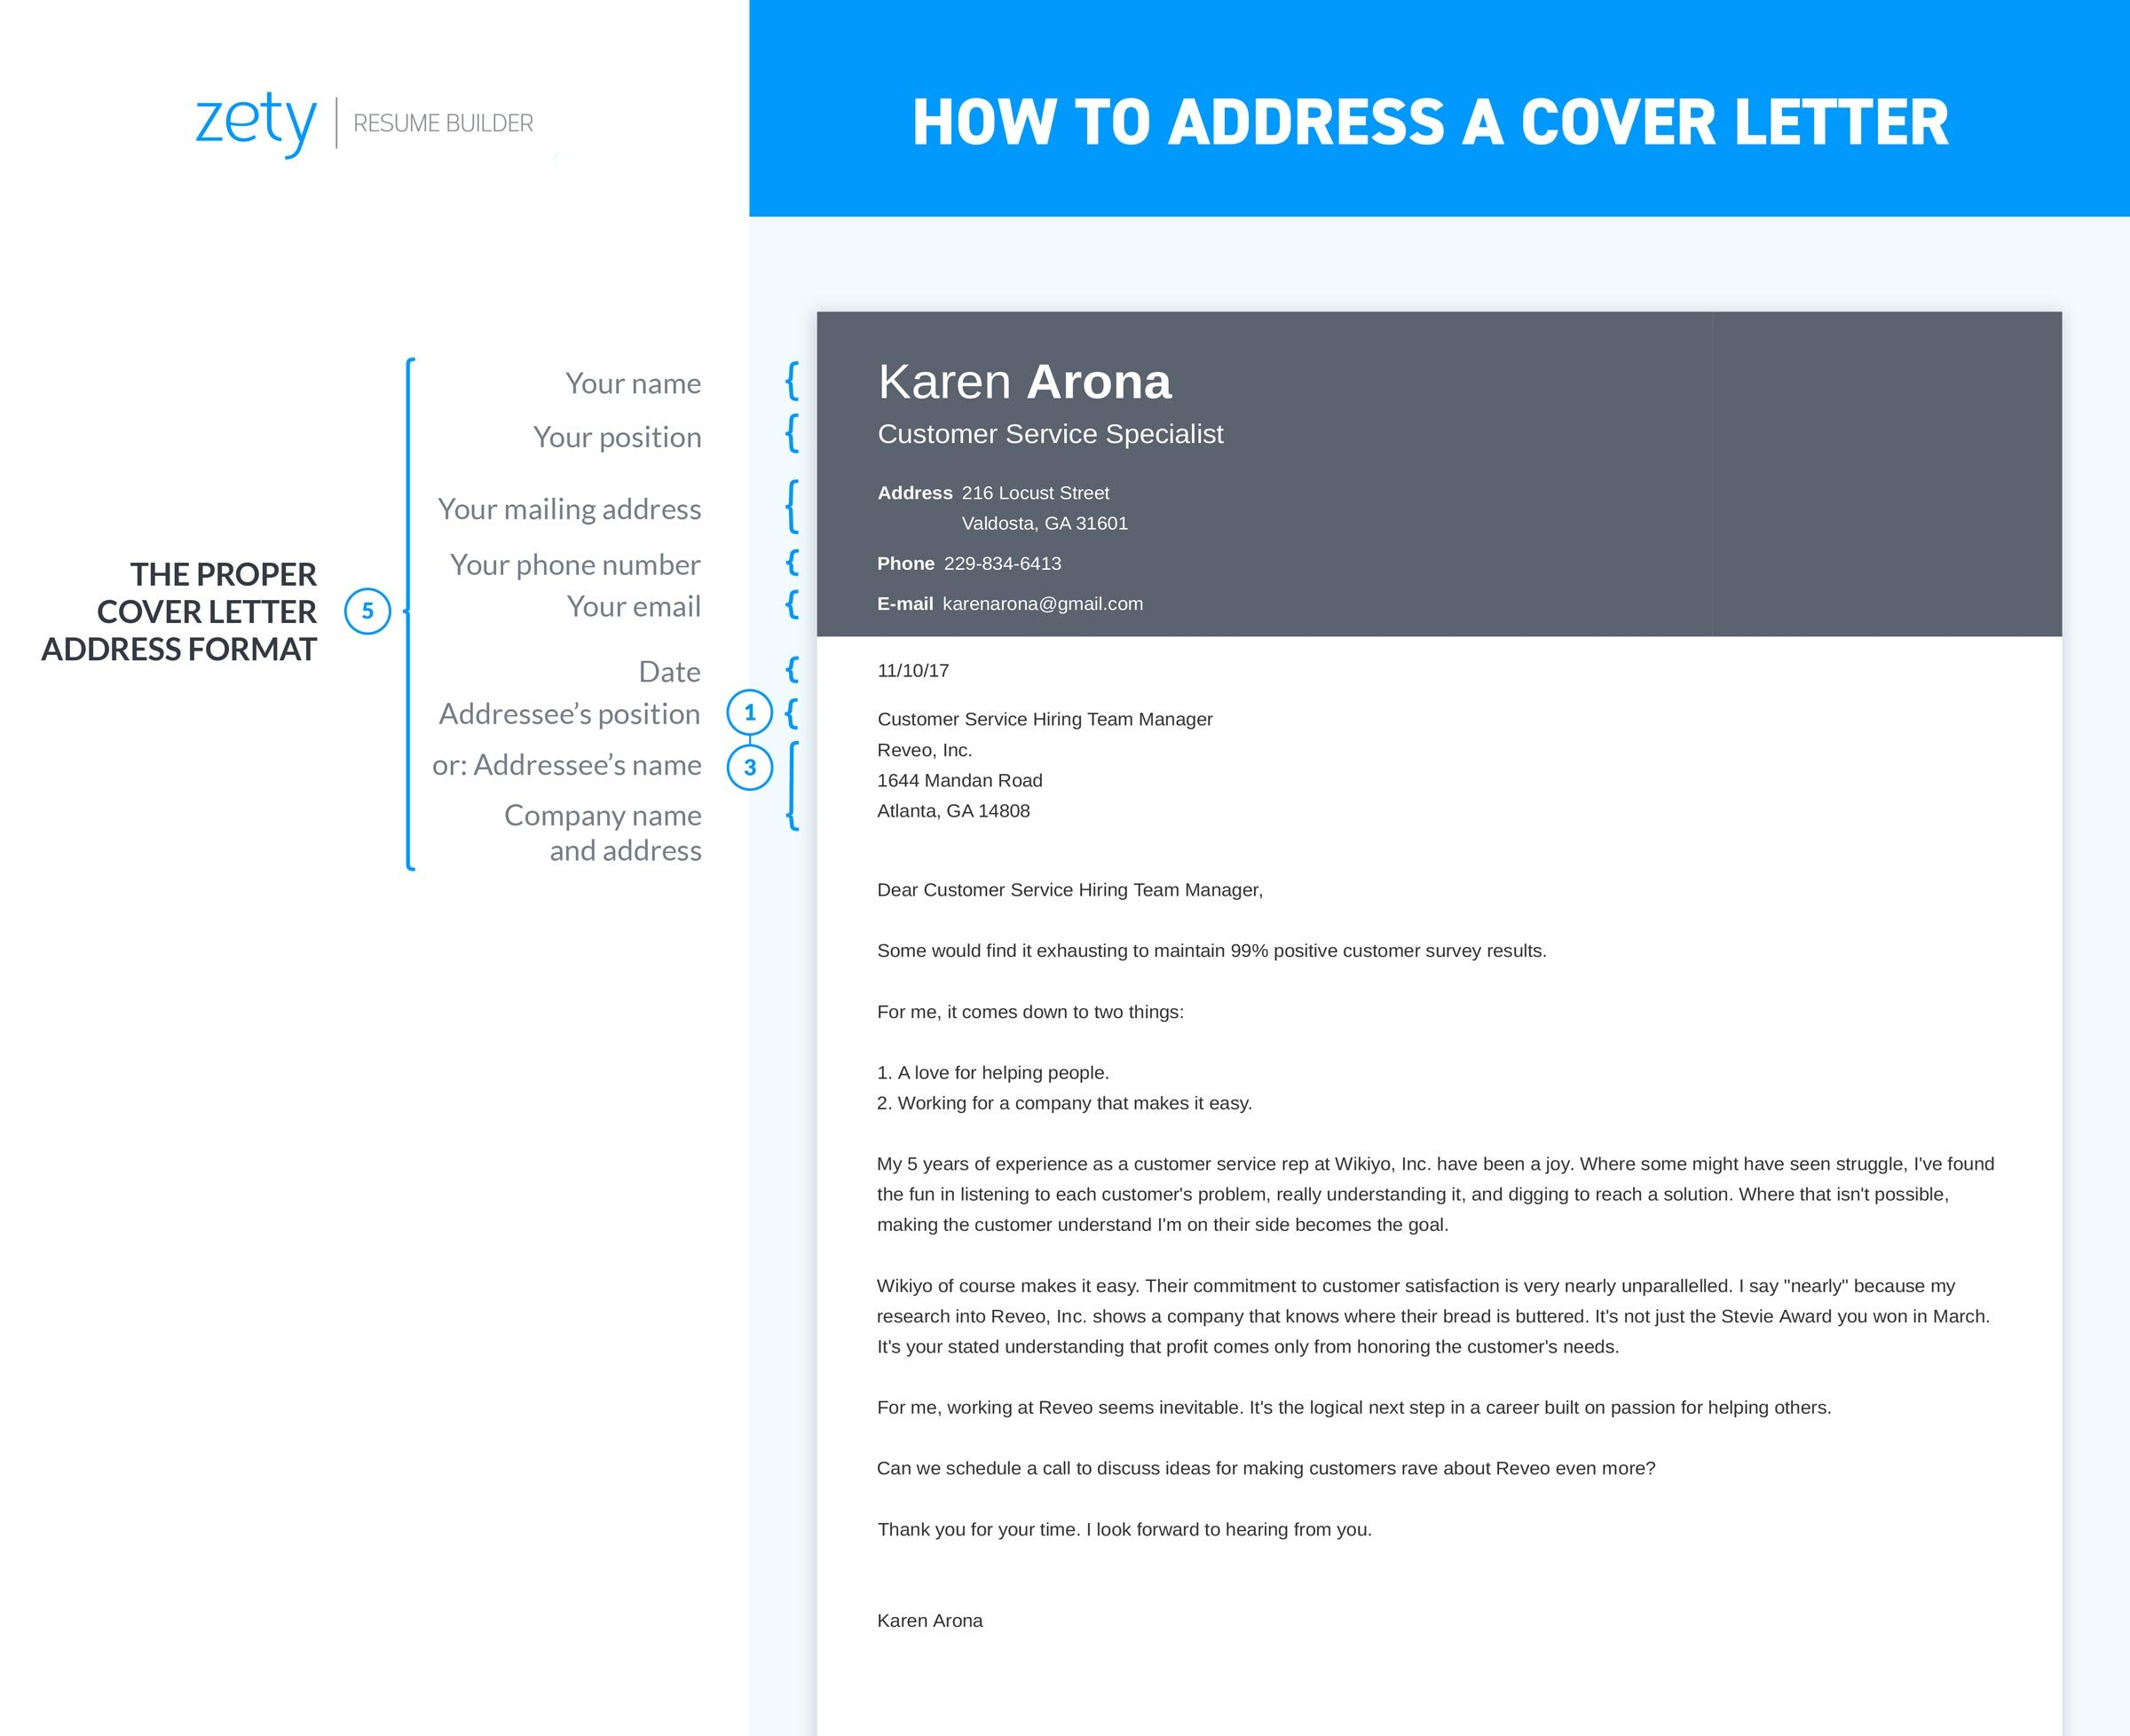 infographic about how to address a cover letter - How To Start A Cover Letter Without A Name